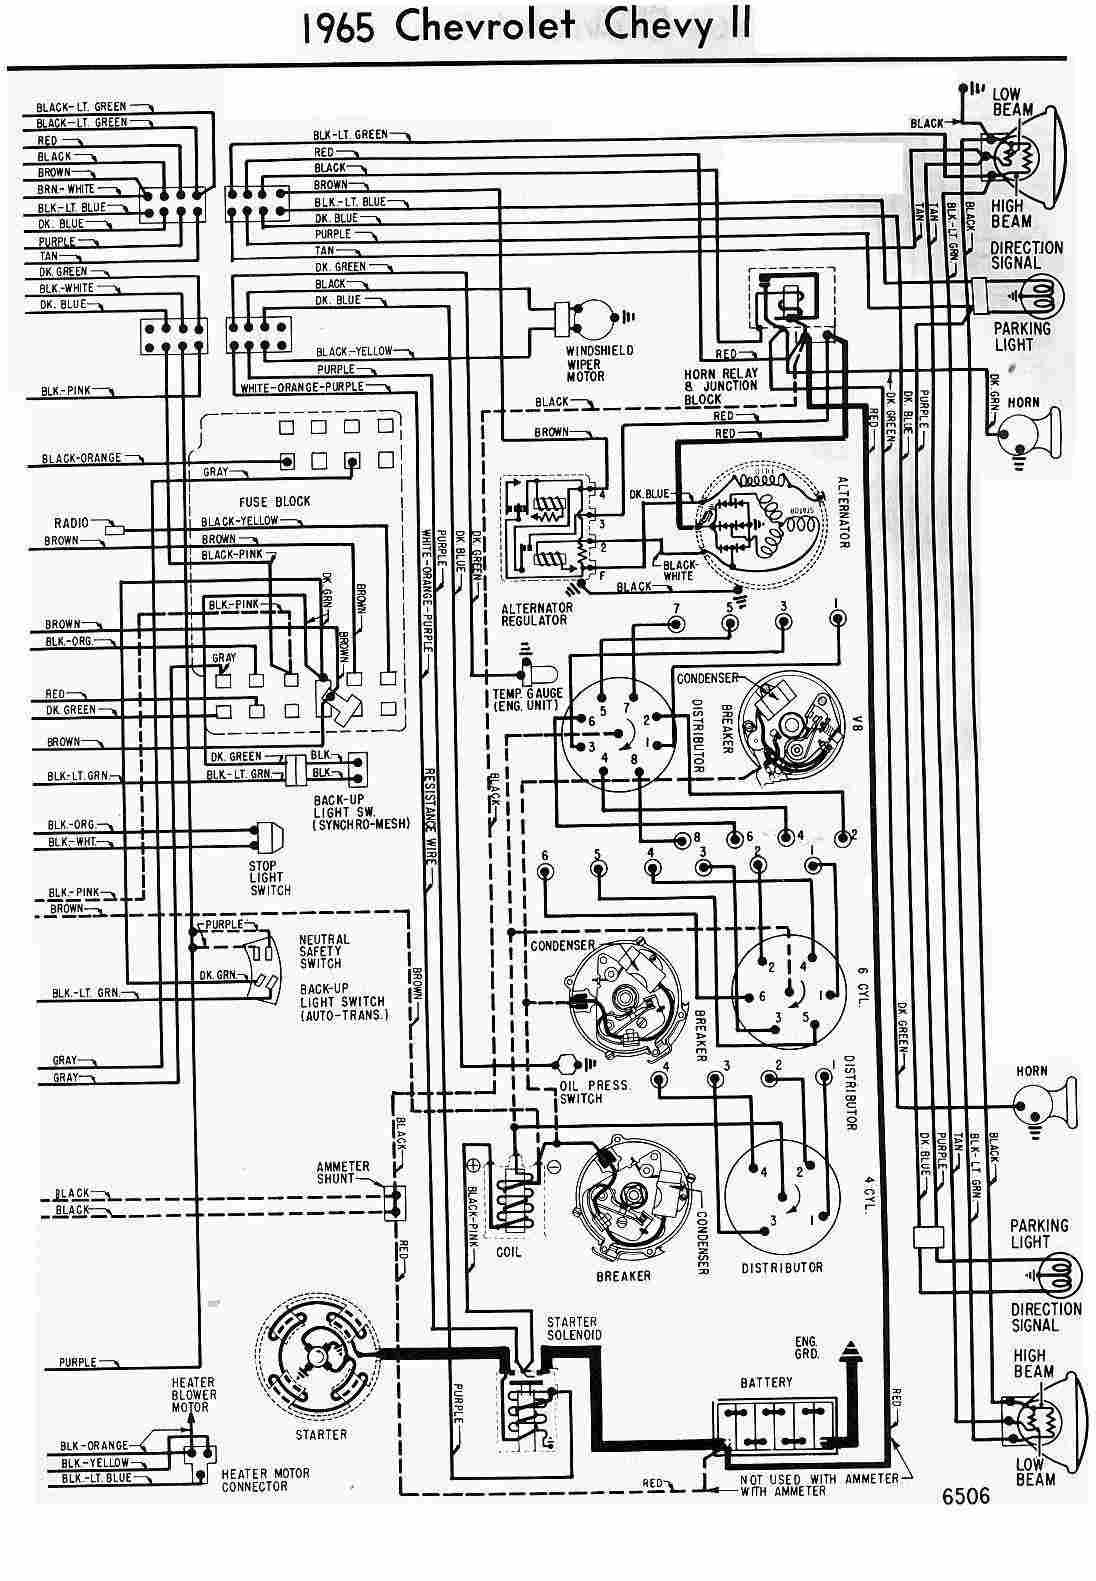 1970 camaro wiring diagram as well chevy wiring diagrams scematic 1972 chevy camaro wiring schematic 1972 [ 1096 x 1581 Pixel ]